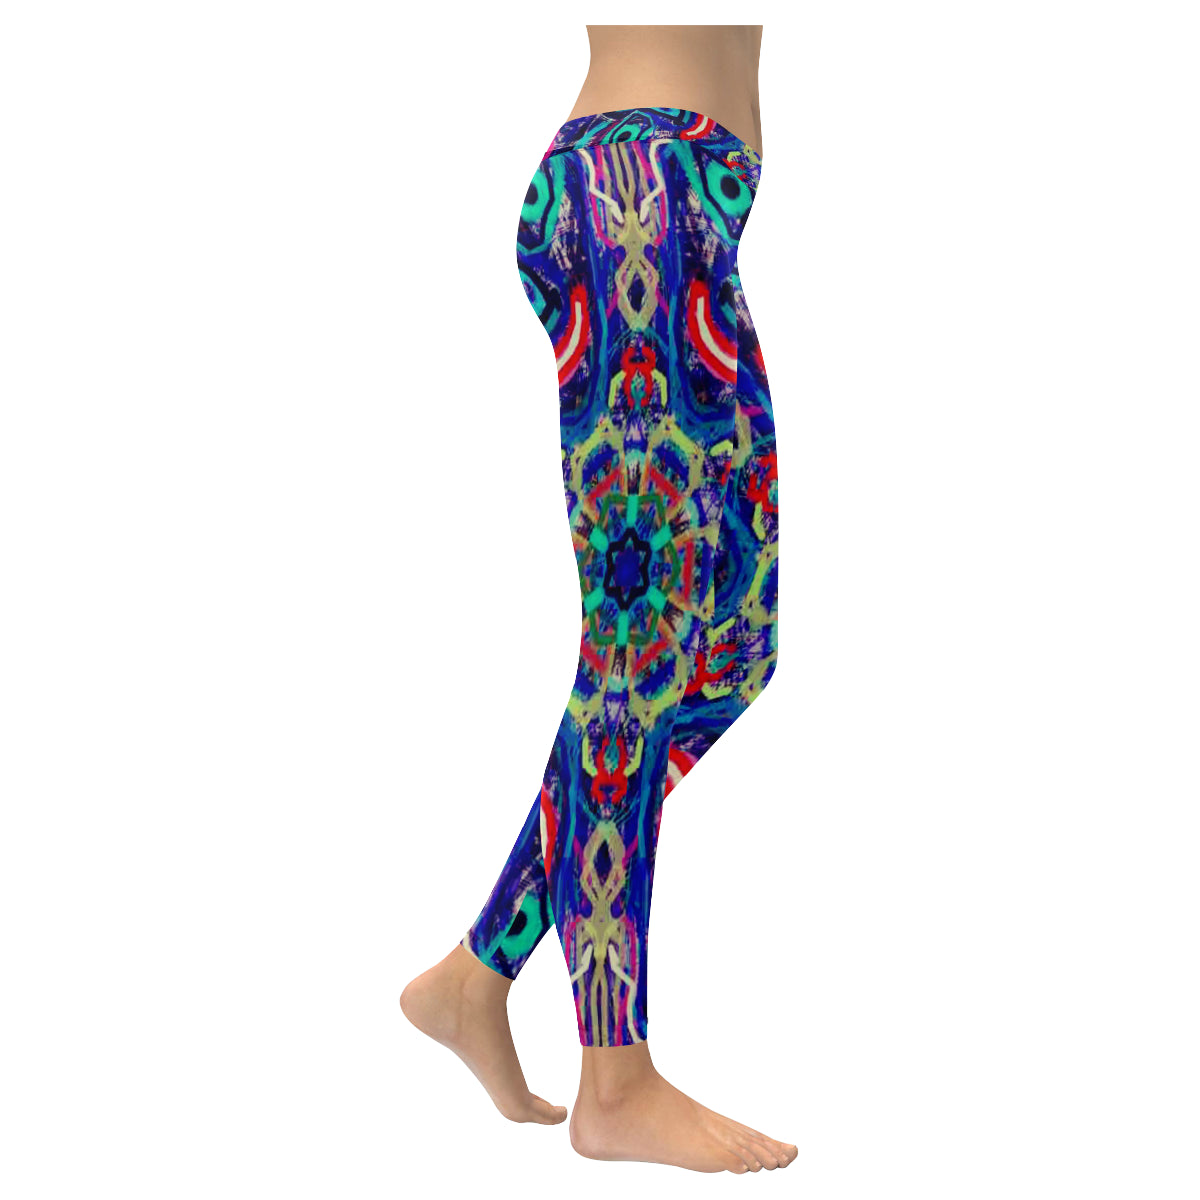 Thleudron Rancher New Low Rise Leggings (Flatlock Stitch) (Model L07) - Thleudron